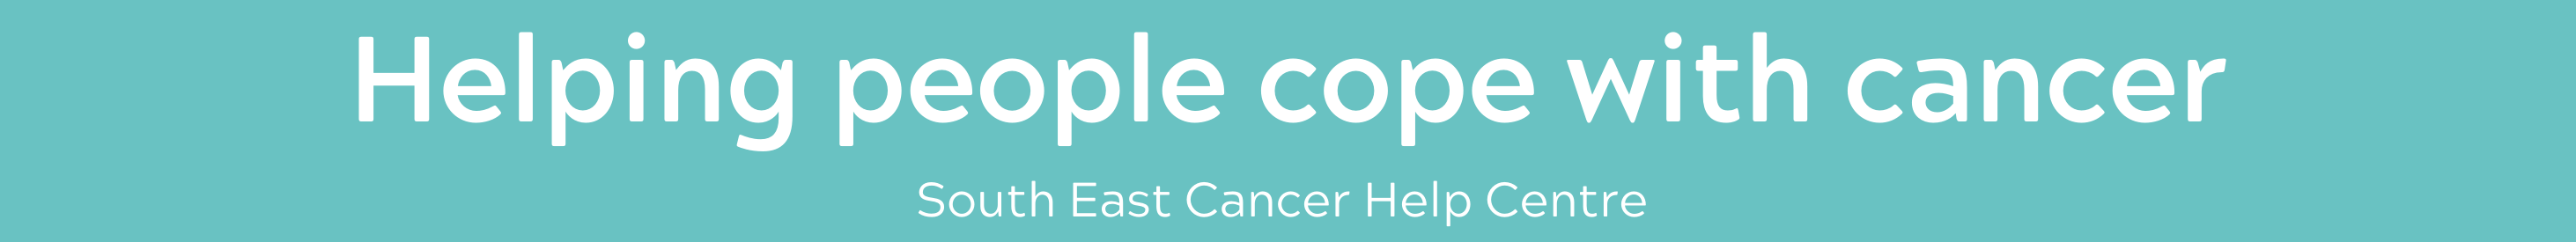 Helping people cope with cancer